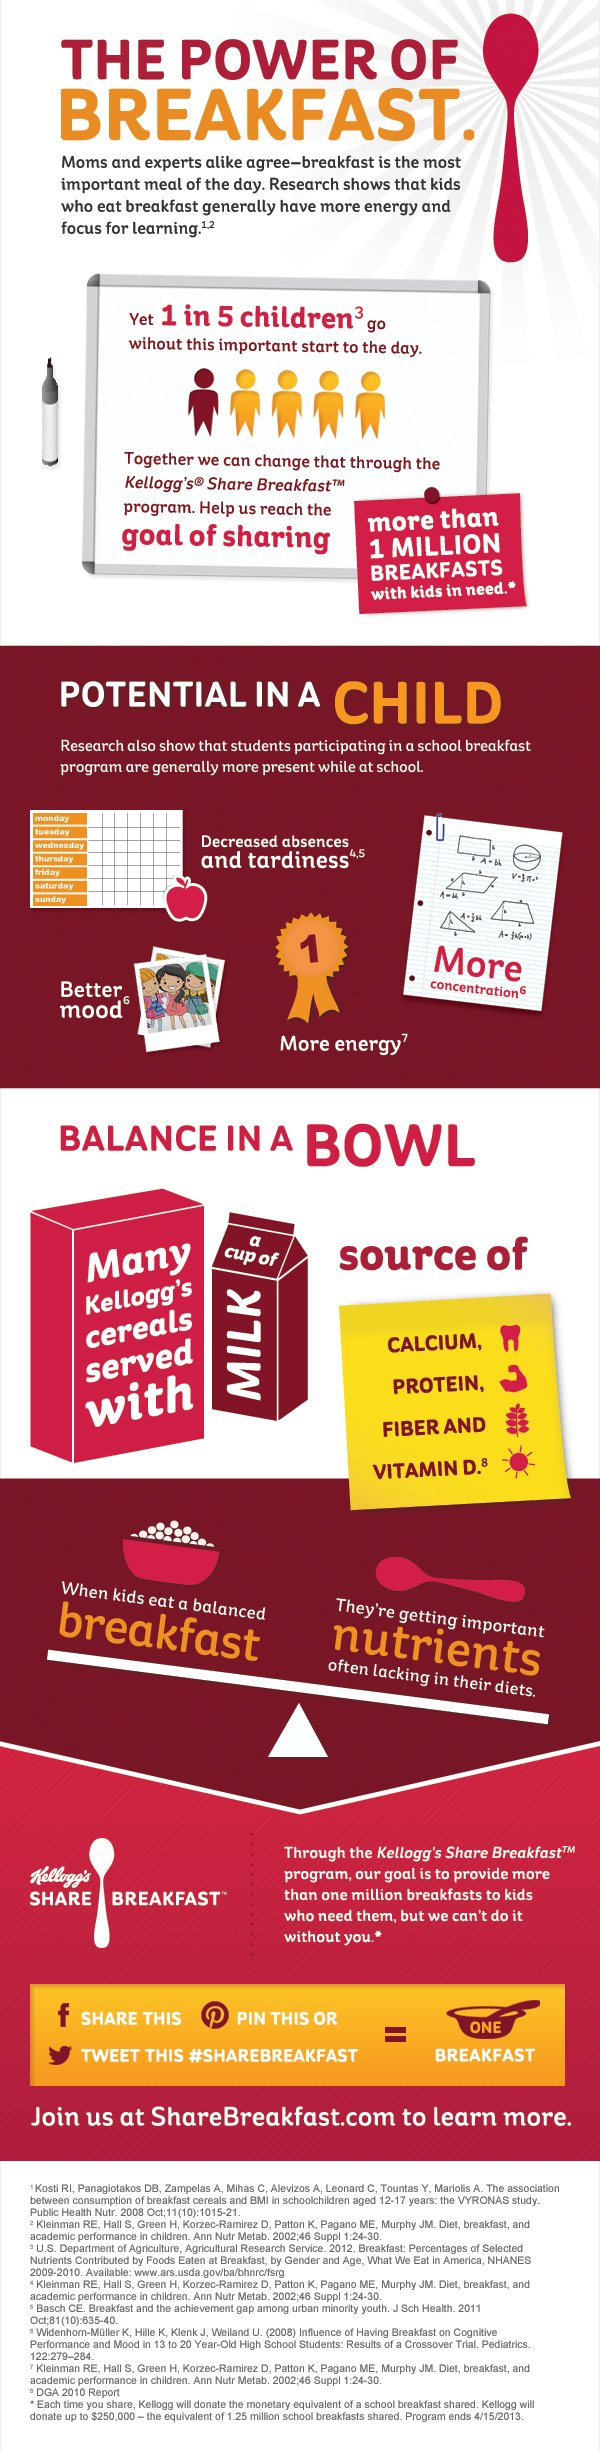 Kelloggs Share Breakfast Infographic #ShareBreakfast